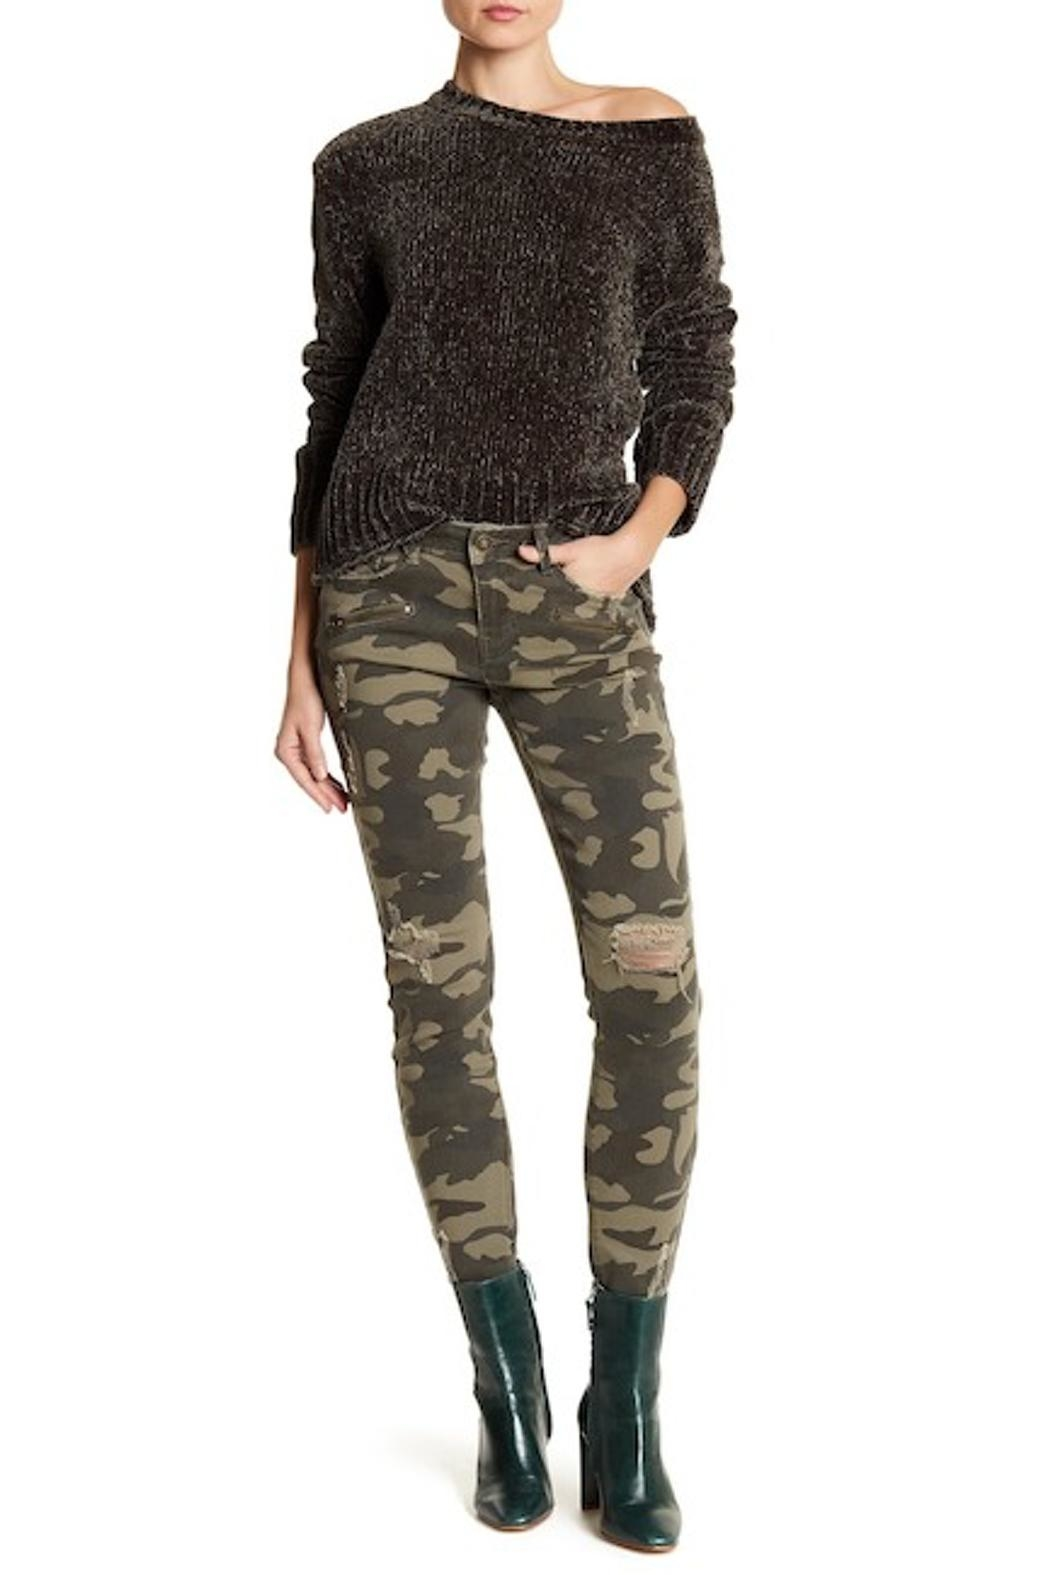 DEX Jeans Camo Skinny Jeans - Side Cropped Image